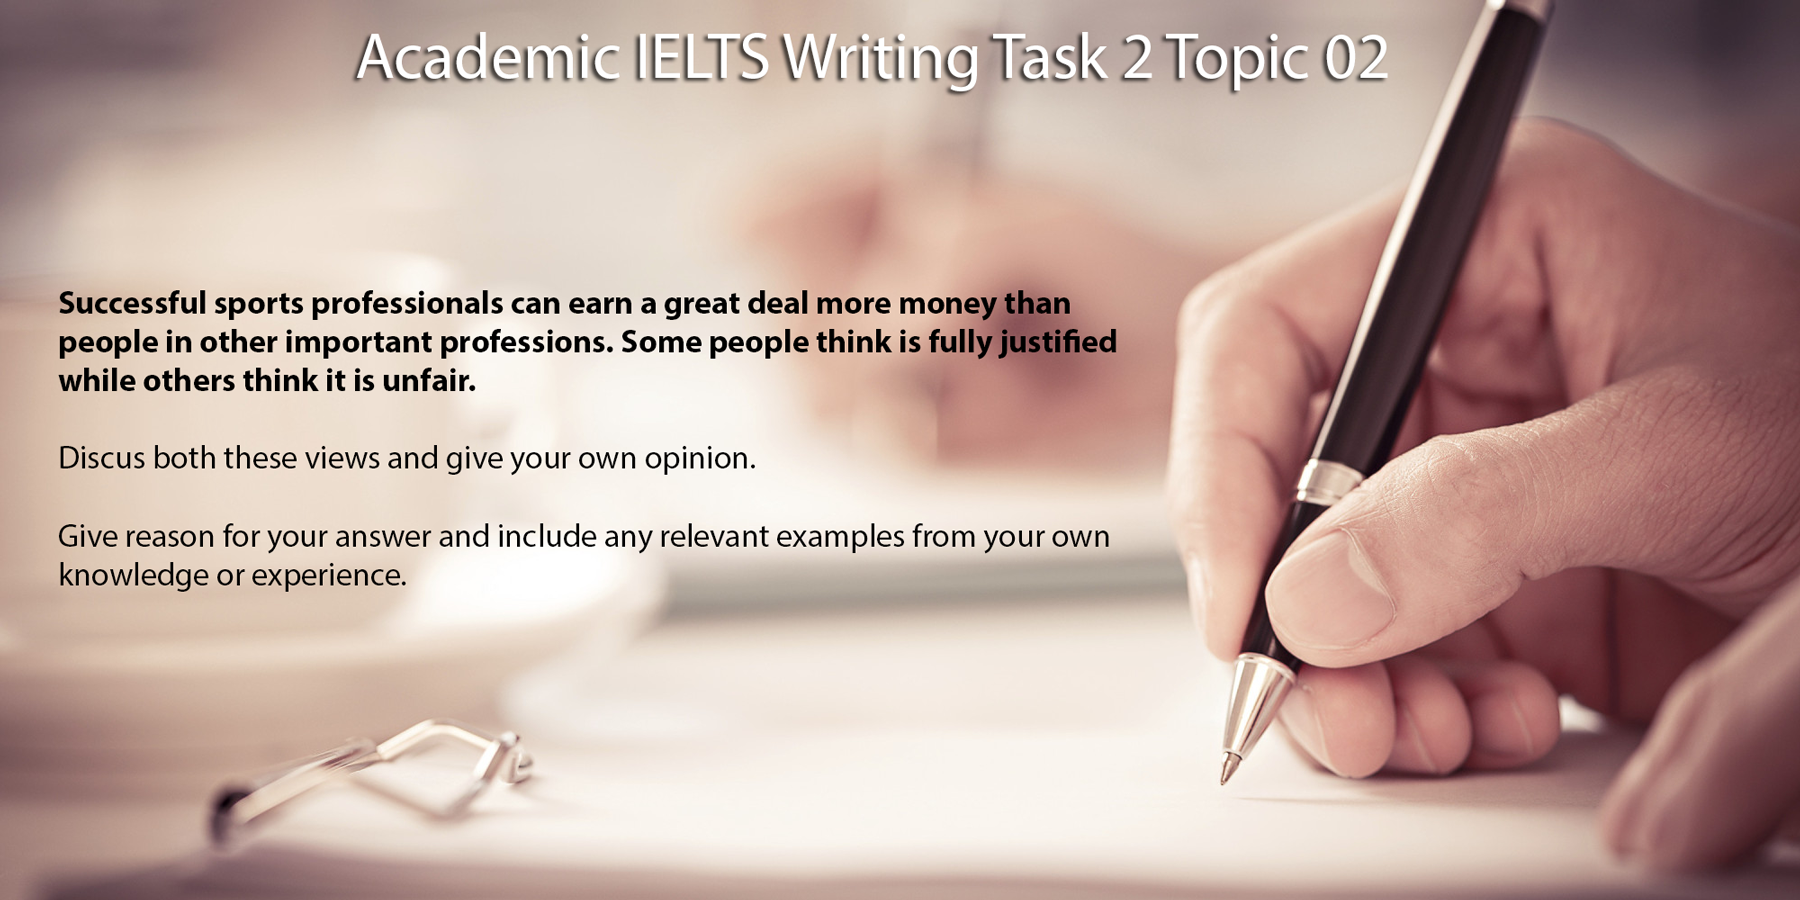 Academic IELTS Writing Task 2 Topic 02